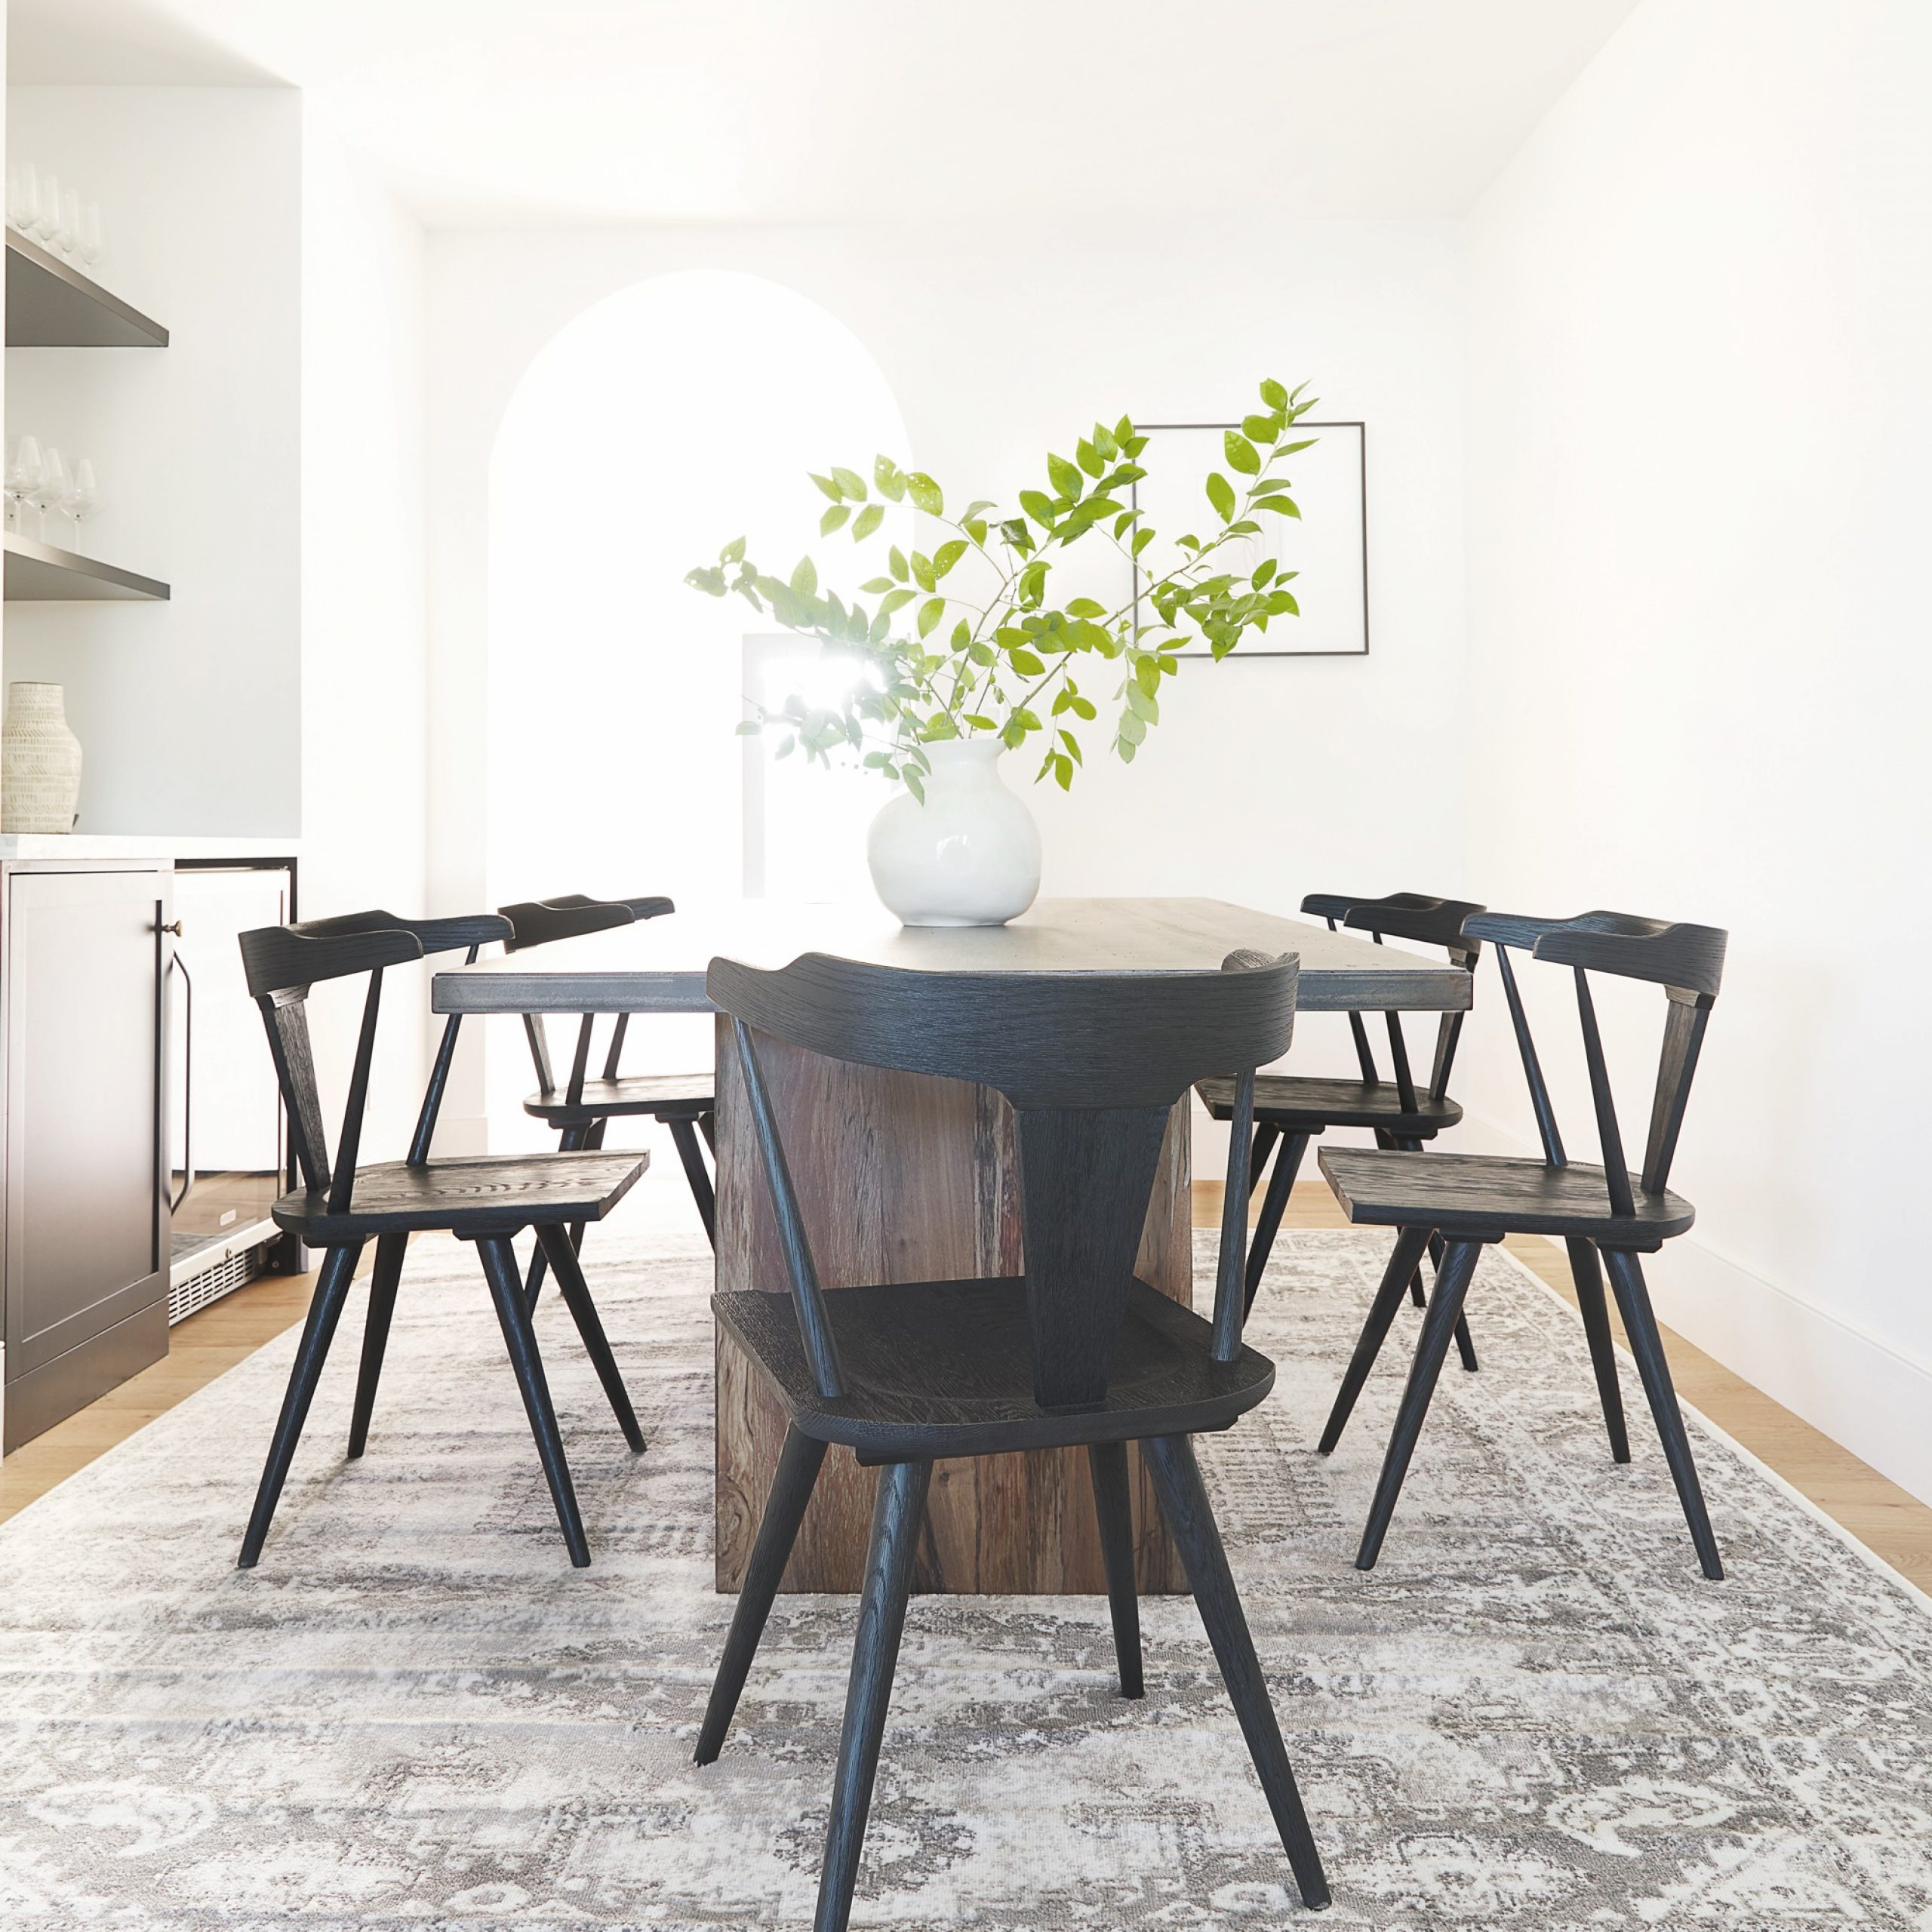 Recent Dining Tables In Smoked Seared Oak regarding Stories - Styling Series: How To Pair Dining Tables And Chairs